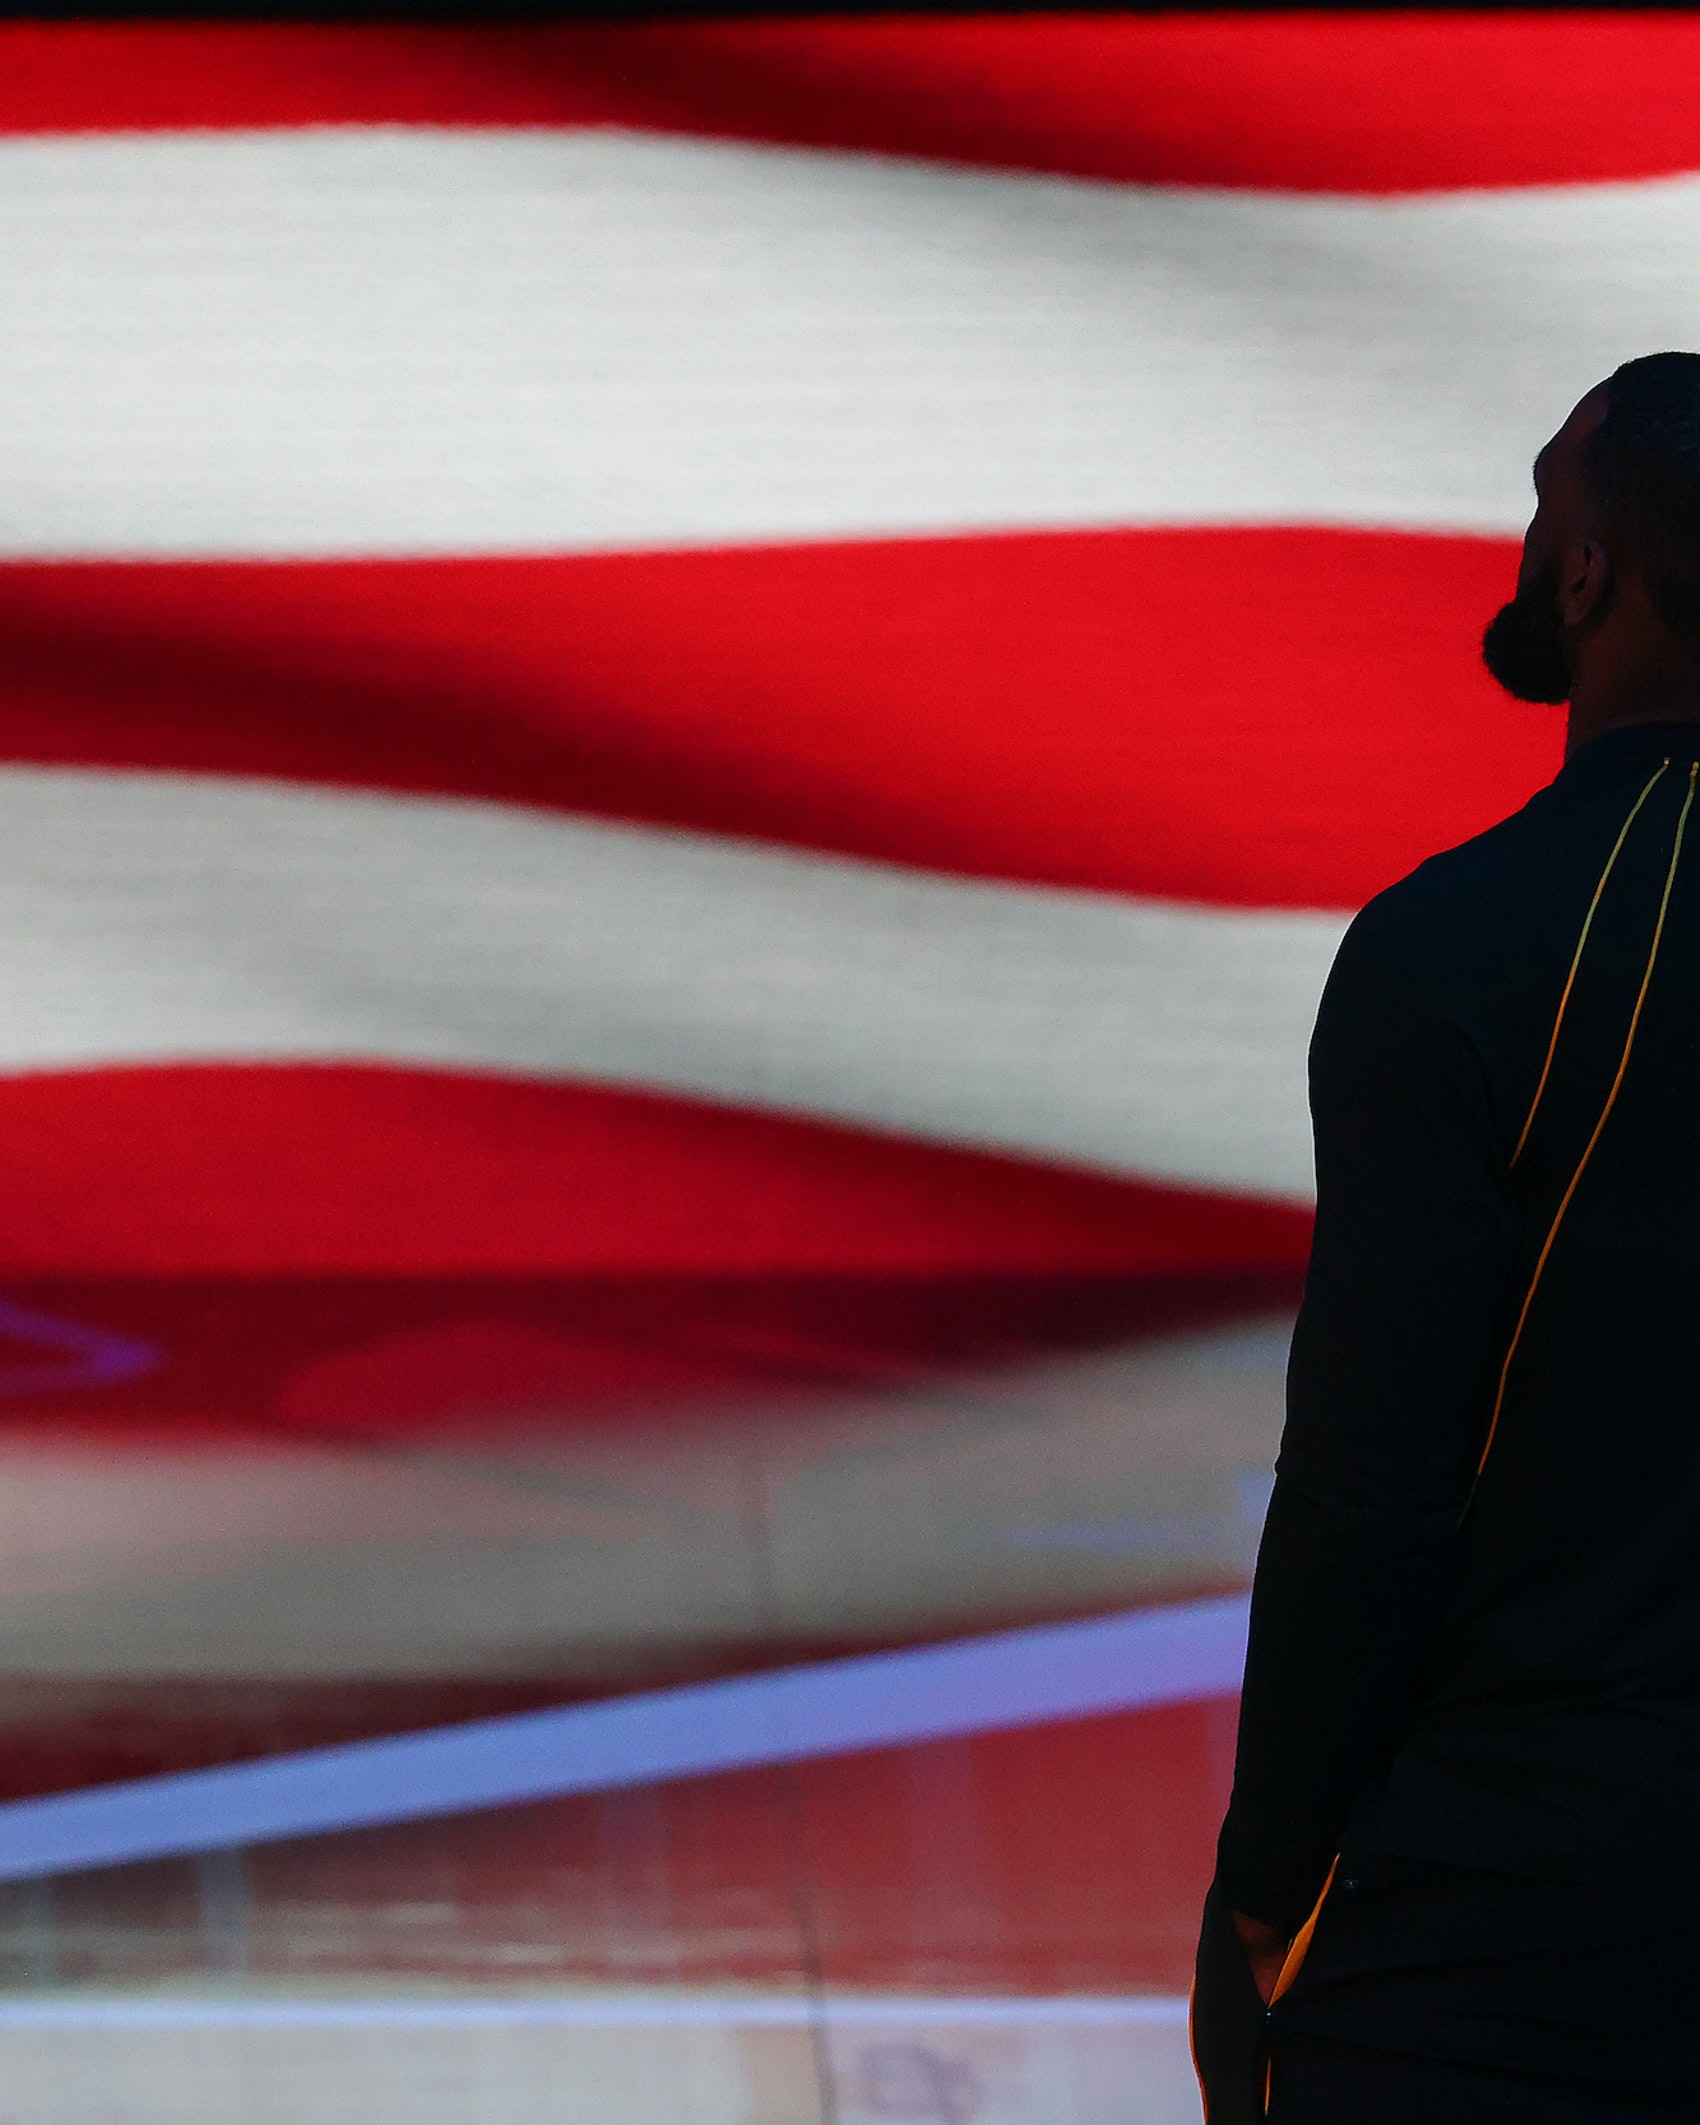 Lebron James #23 of Team LeBron stands for the national anthem prior to the 70th NBA All-Star Game at State Farm Arena on March 07, 2021 in Atlanta, Georgia. (Photo by Kevin C. Cox/Getty Images)